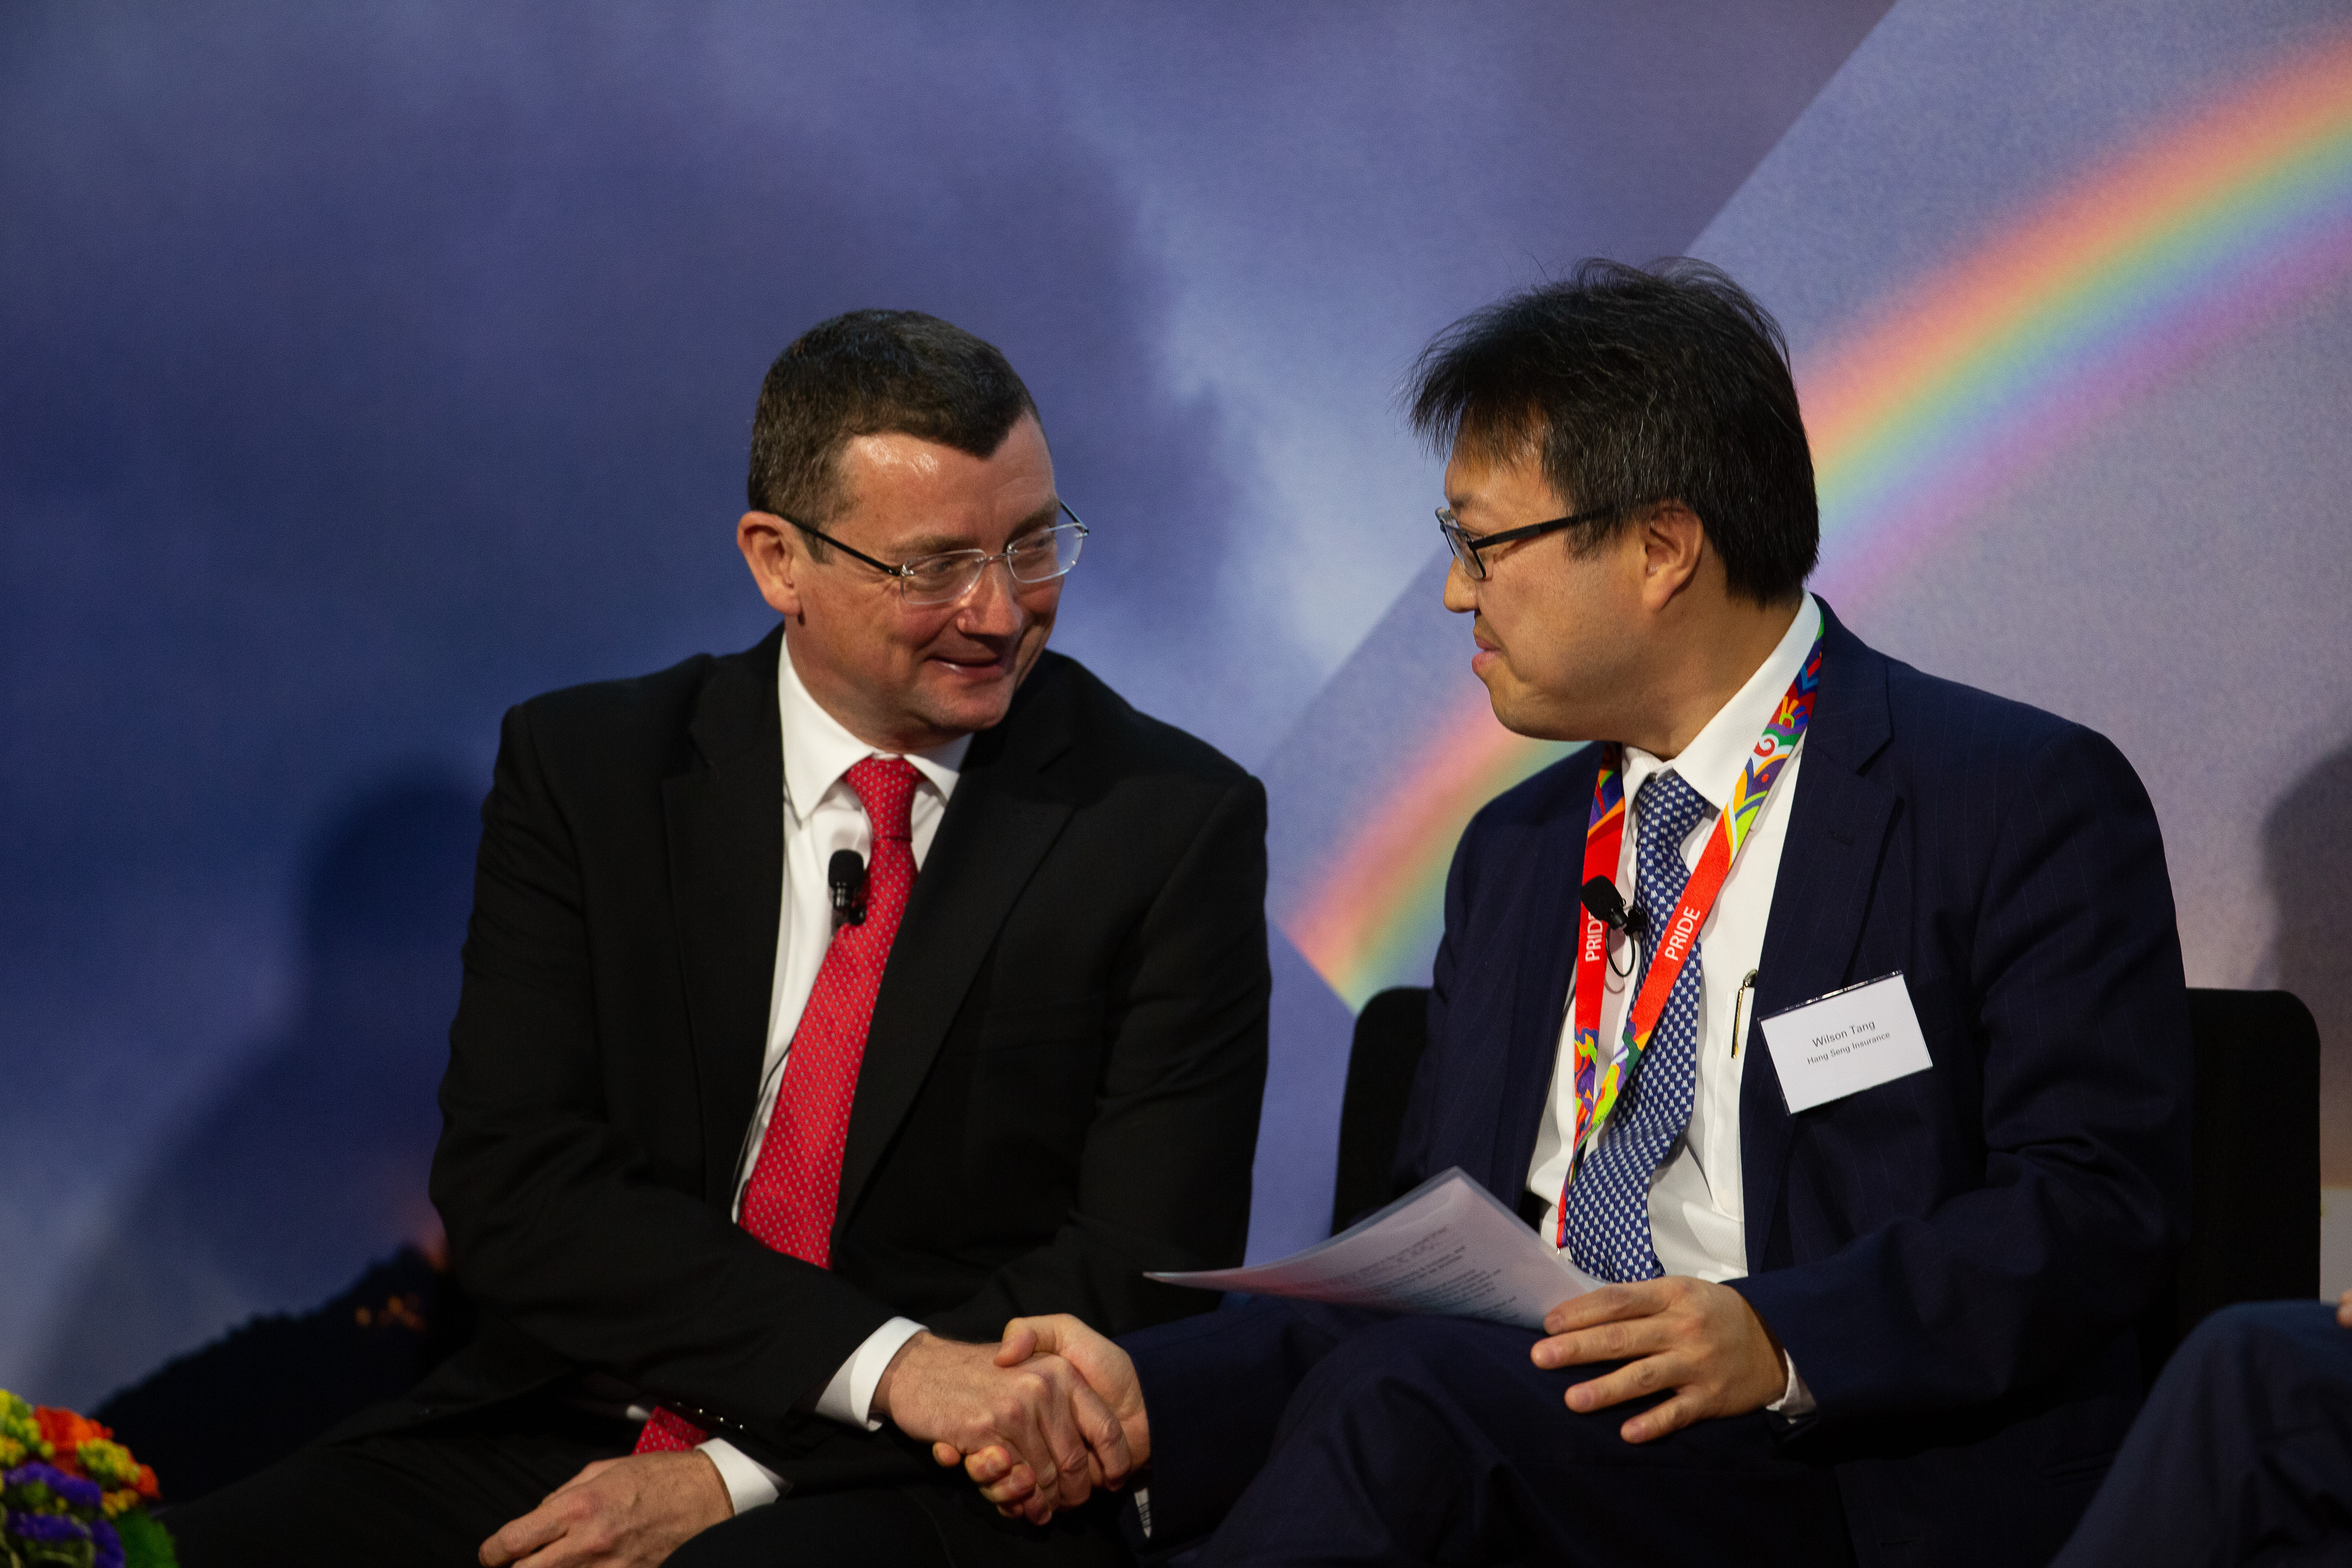 In Hong Kong, C-Suite Leaders reflect upon progress in the region 5